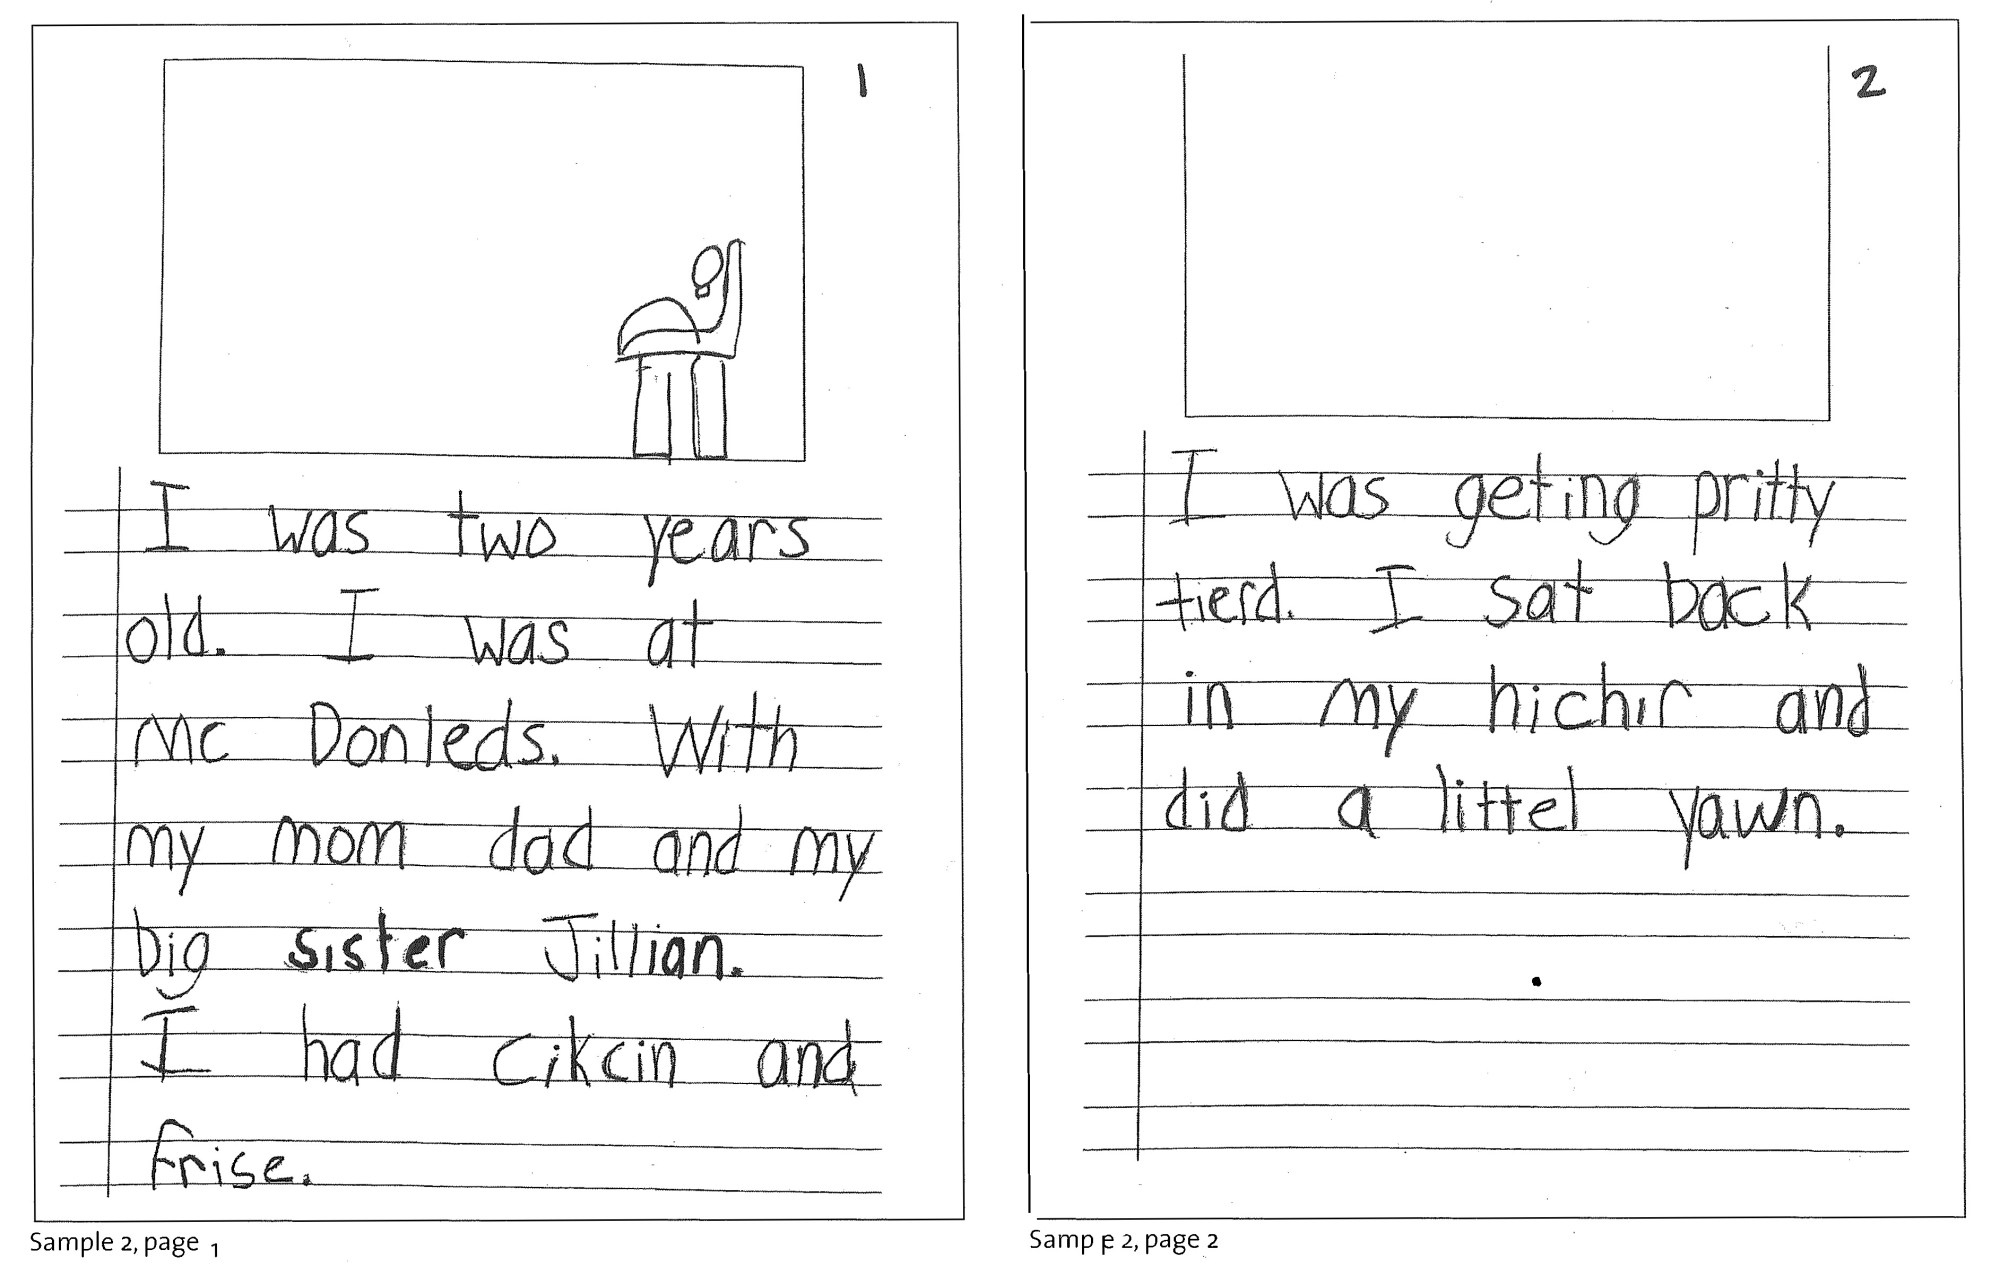 hight resolution of Writing Samples - Ages 6-9 - Wilmington Montessori School